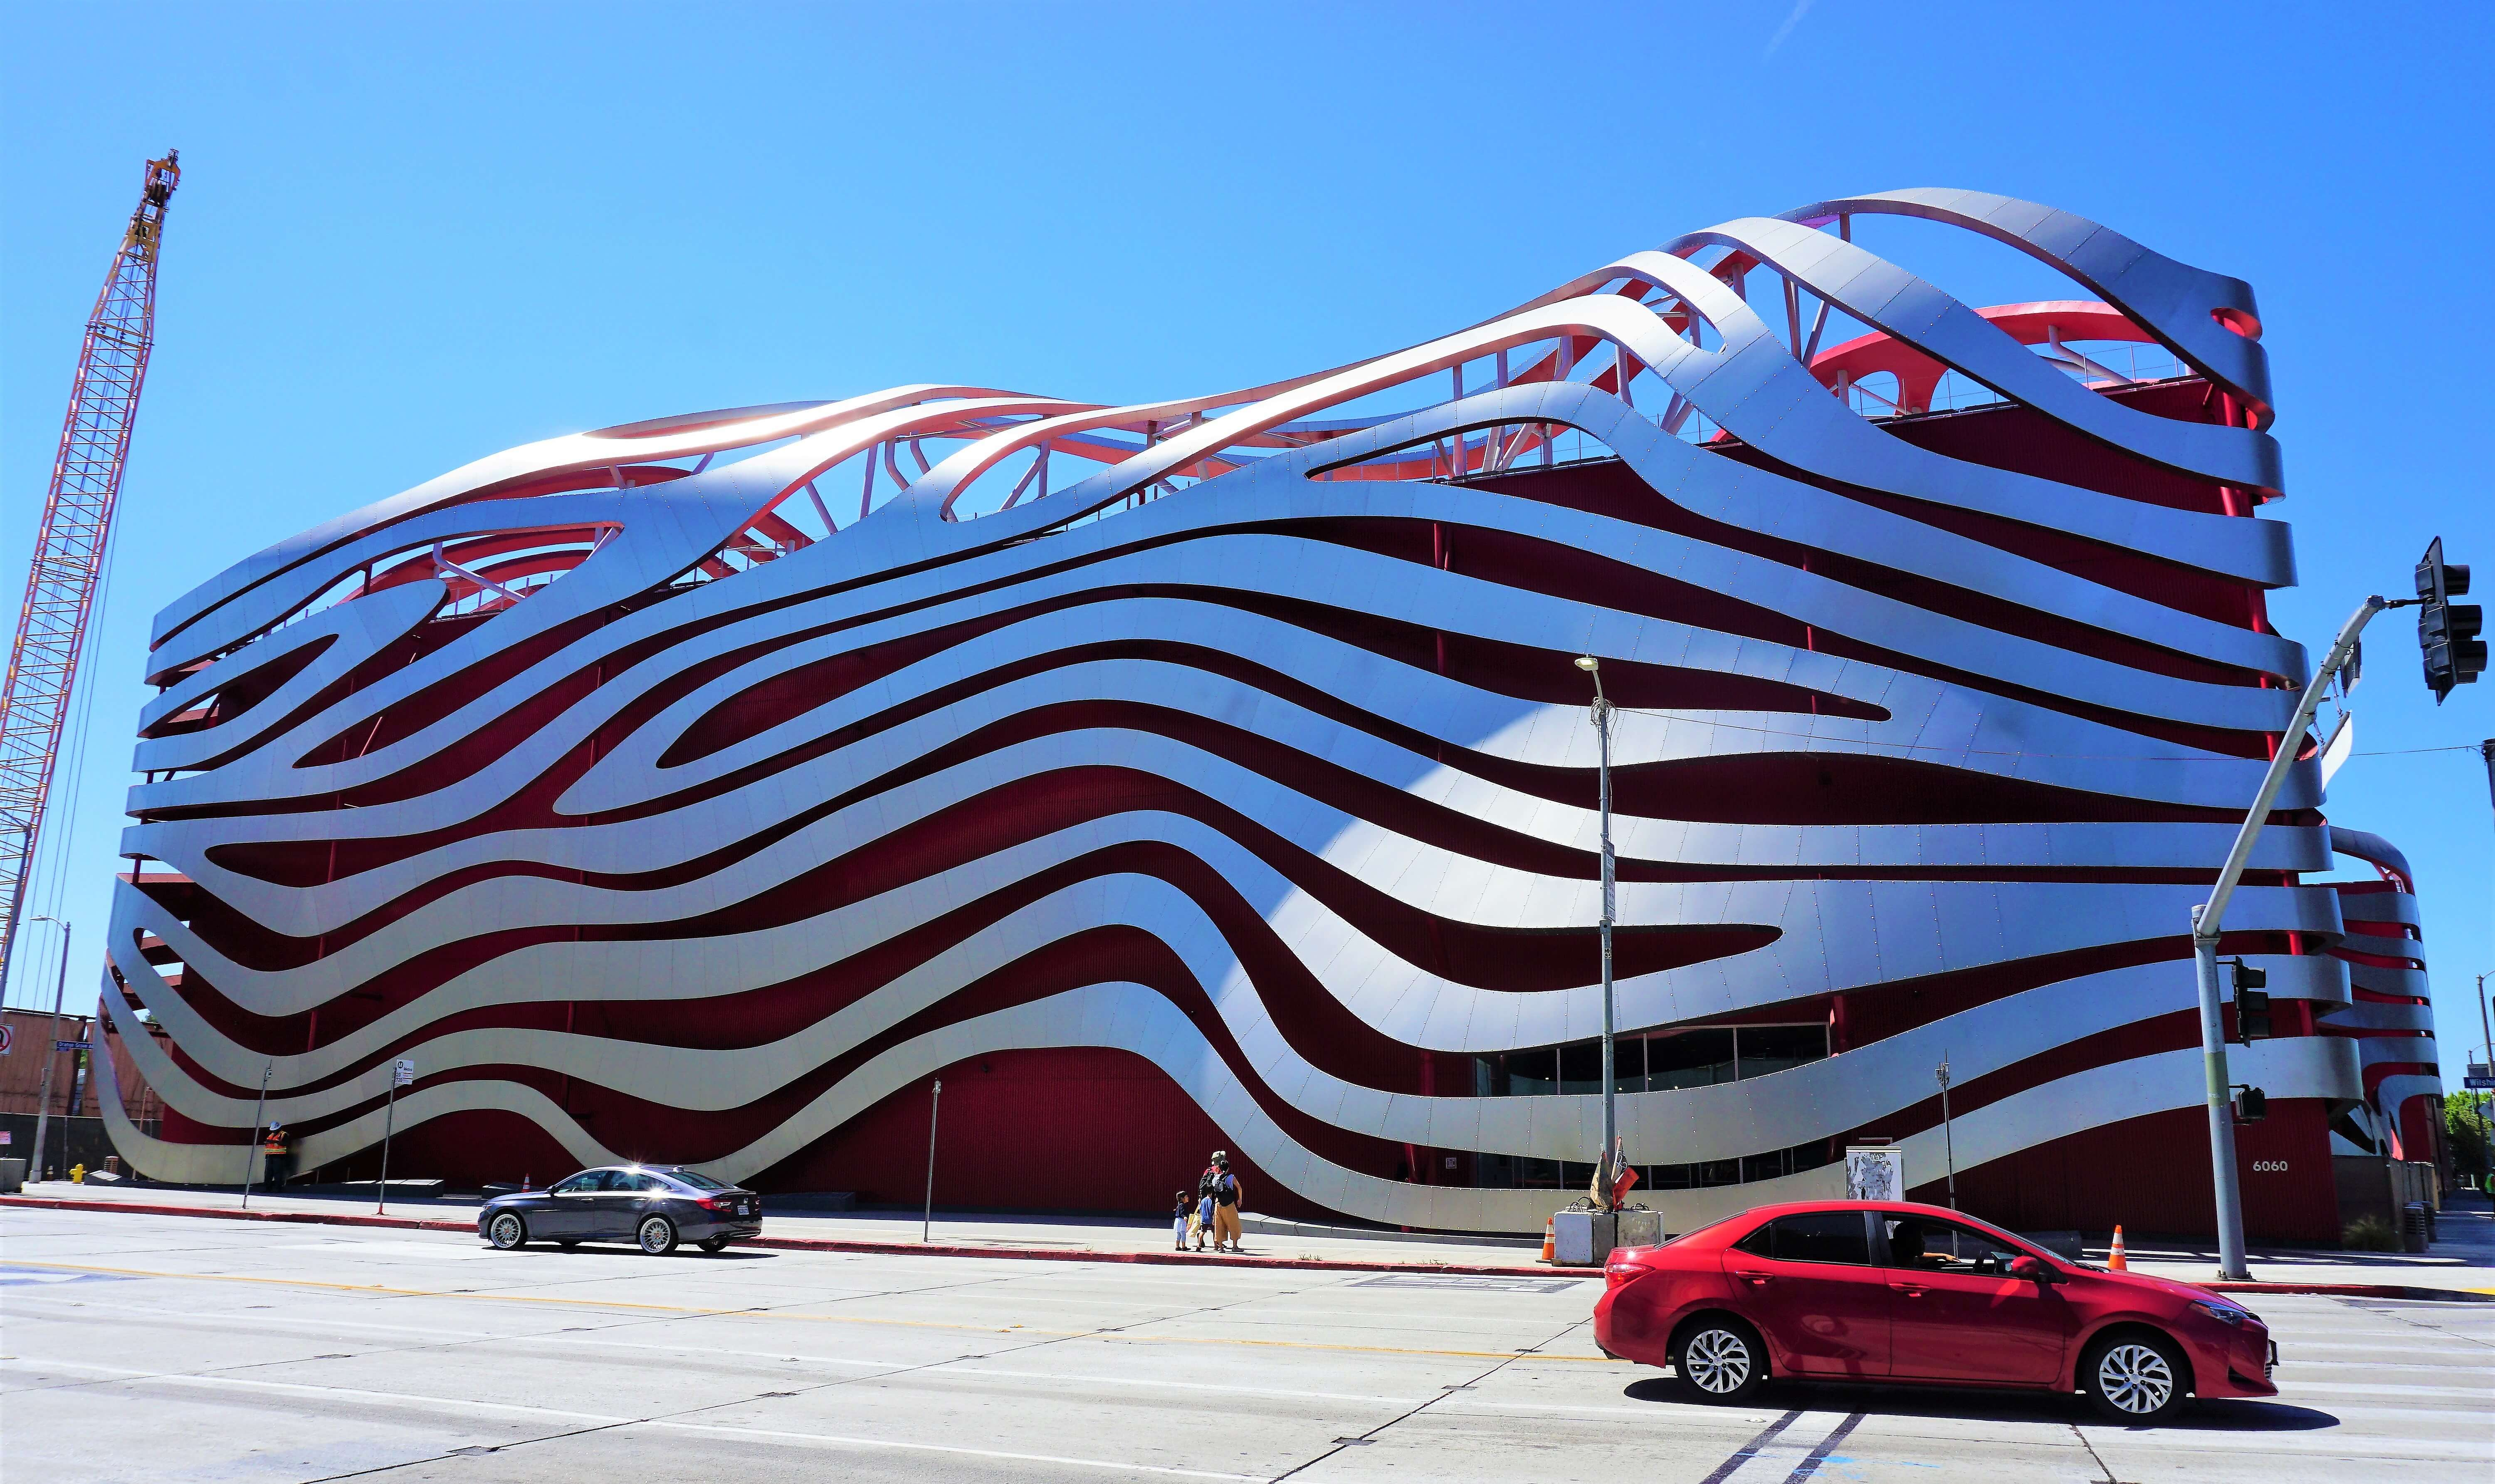 Exterior of the Petersen Automotive Museum